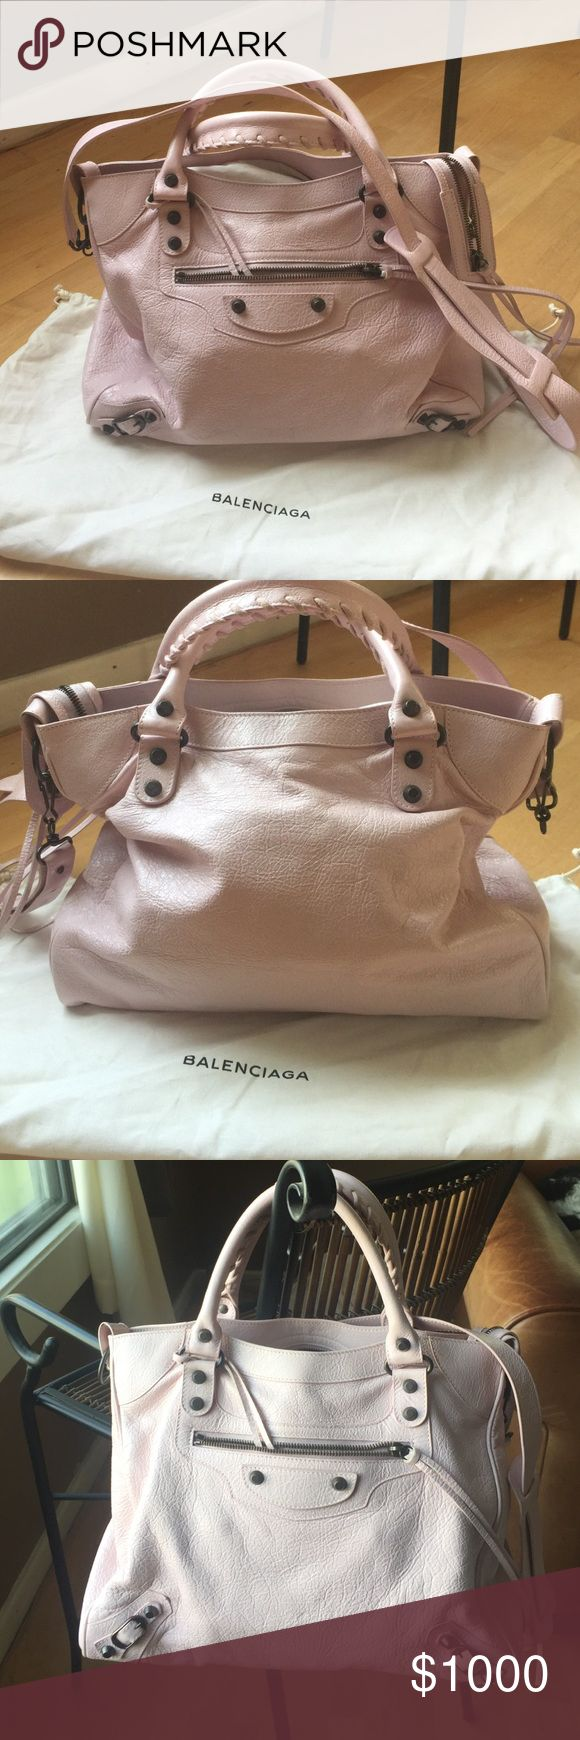 """Balenciaga Velo in rose Poudre lambskin Balenciaga Velo in powder pink """"rose Poudre"""" lambskin with dark nickel studs. Comes with small mirror, shoulder strap and dust bag. Excellent condition. No markings. Very slight rubbing along two bottom edge corners. No color transfer. Year 2014 I believe. 13.5""""w x 11""""h x 6.5"""" d. No trades. Balenciaga Bags Shoulder Bags"""